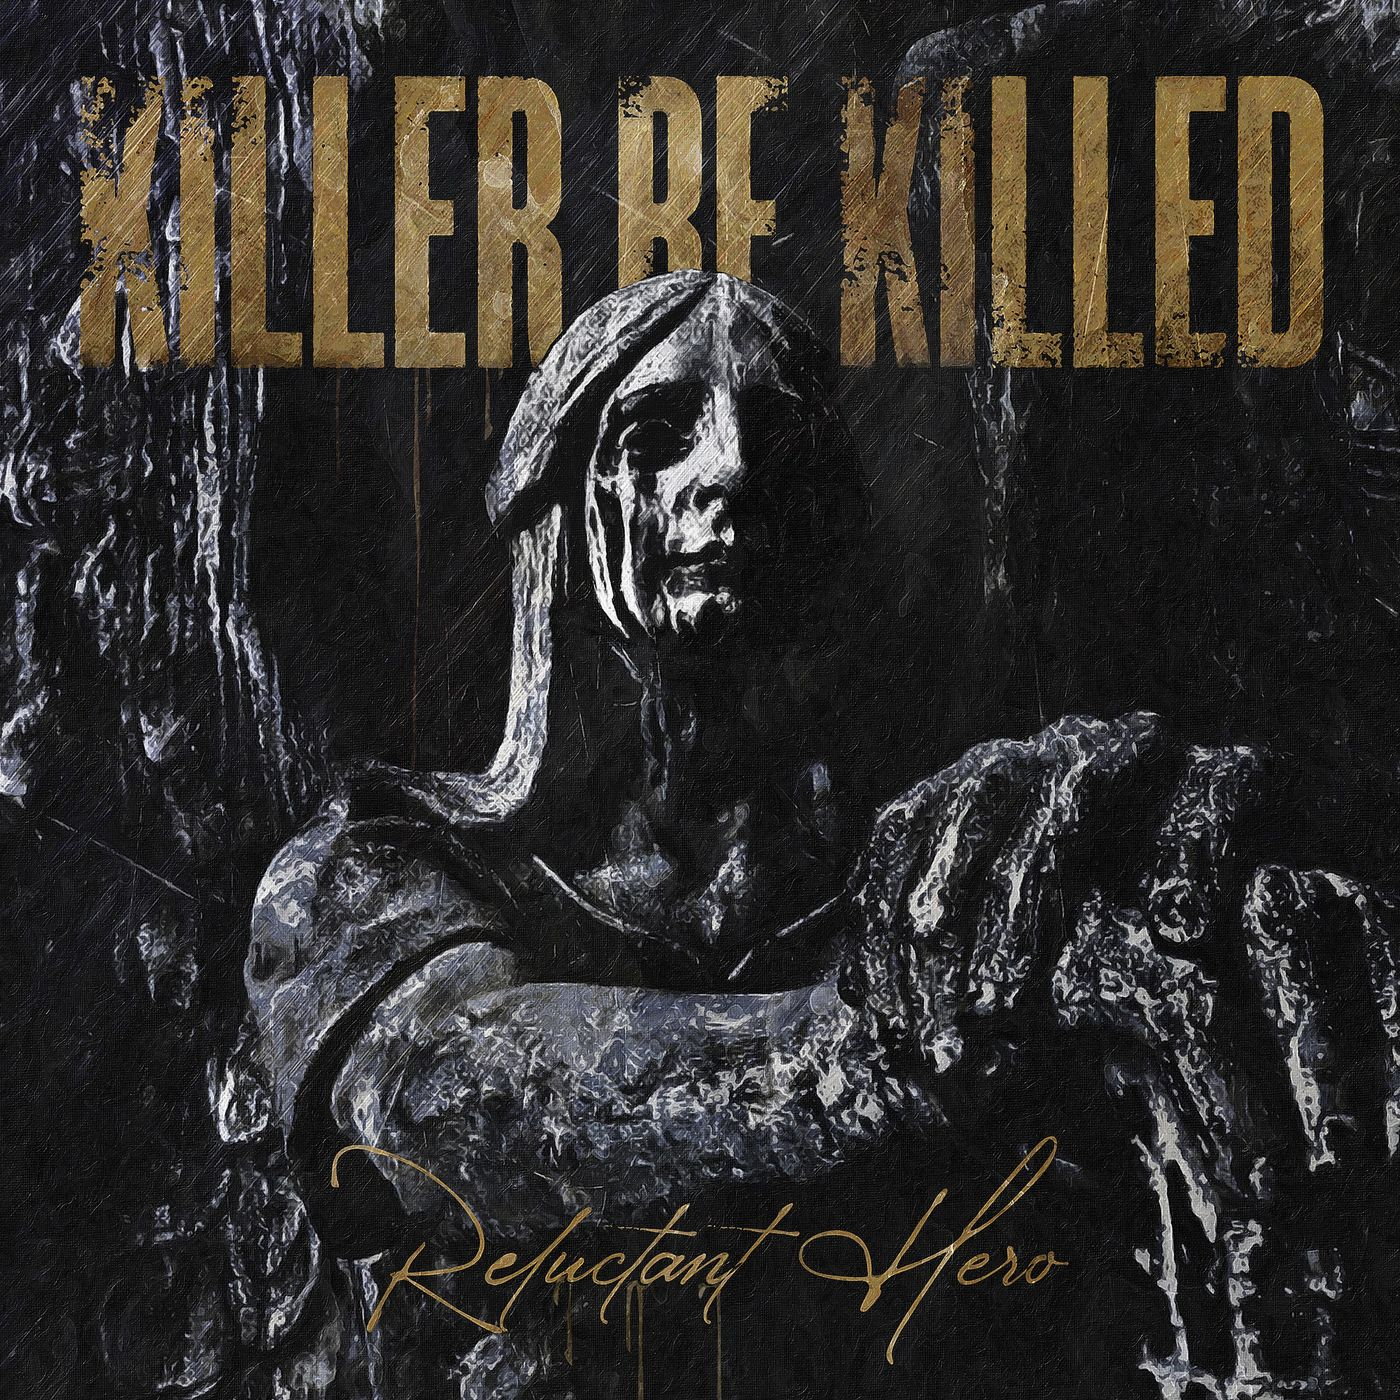 Killer Be Killed - Deconstructing Self-Destruction [single] (2020)